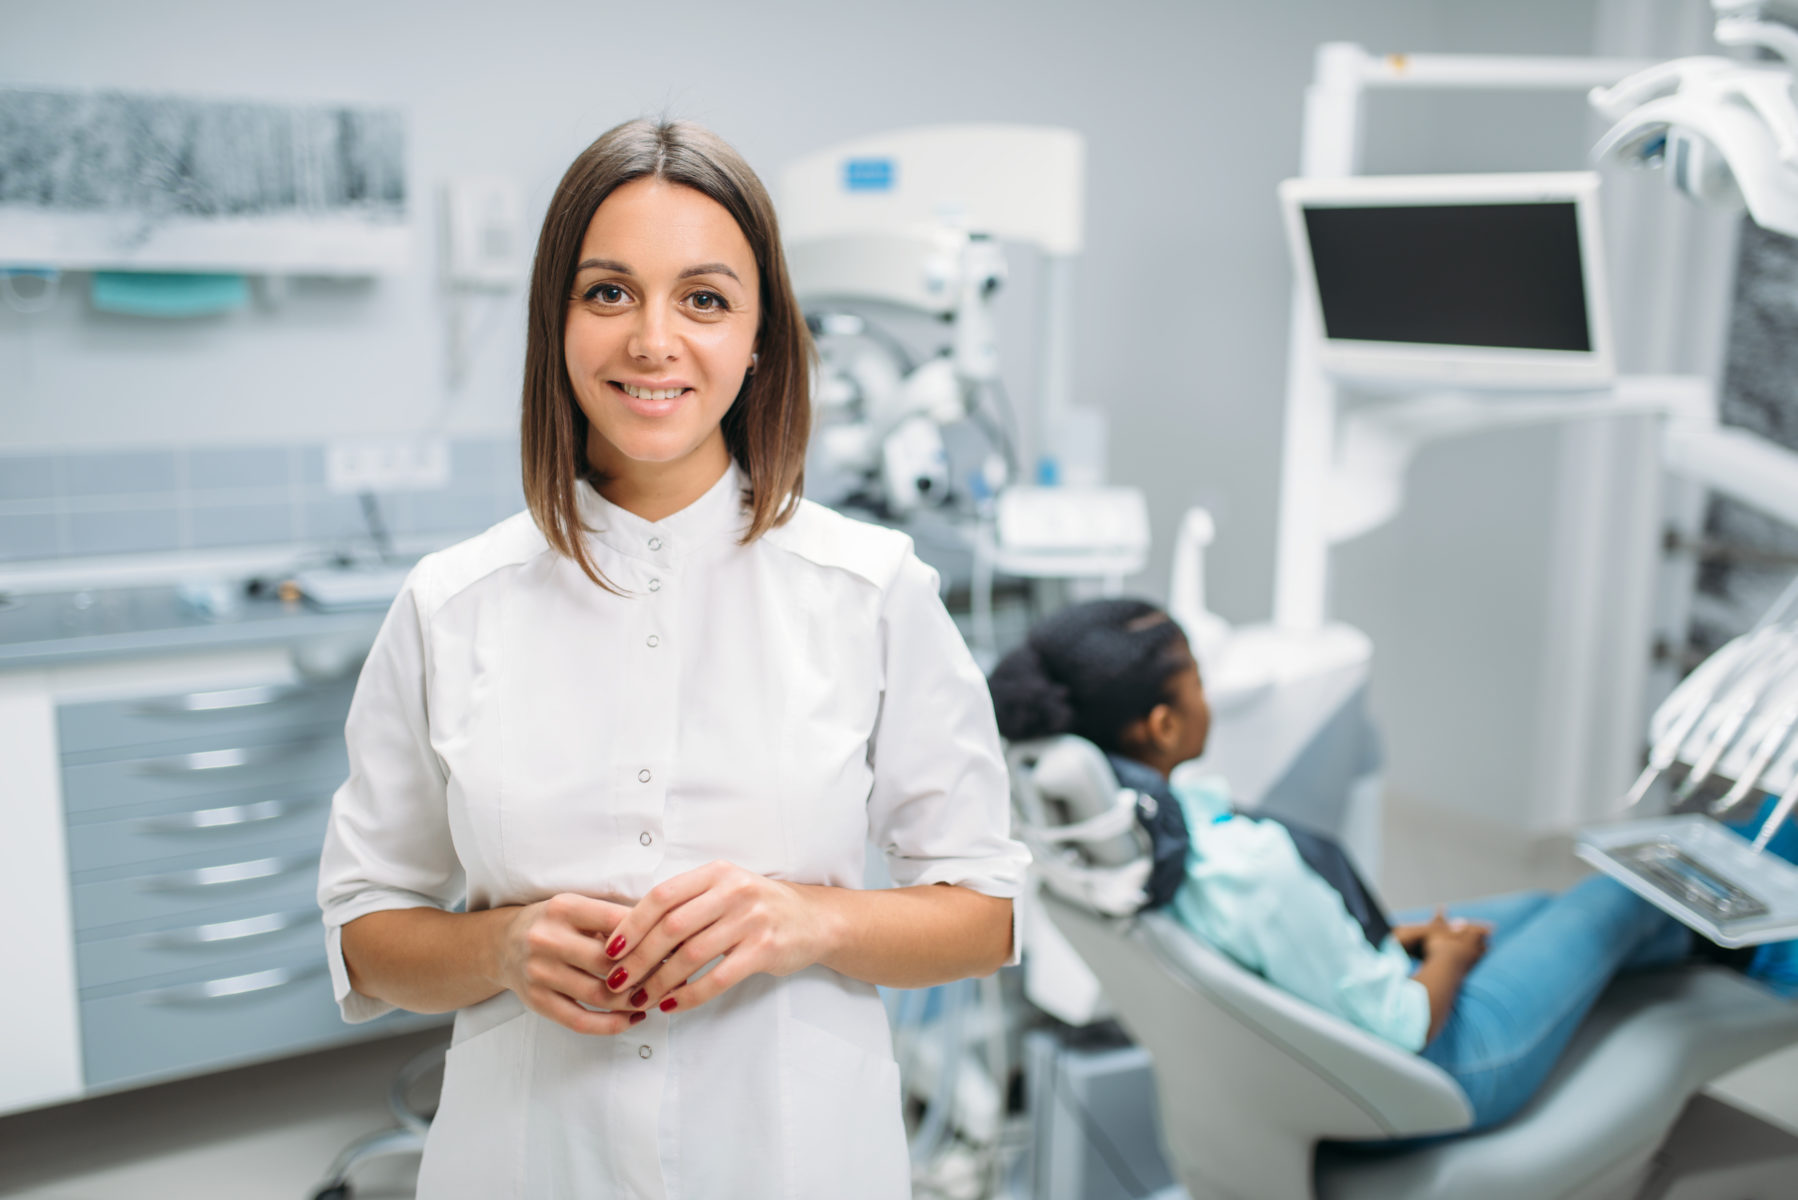 You will never be too mature to flaunt a confident smile. dentist cecil hills clinic uses Invisalign, a brilliant braces alternative that uses clear, undetectable aligners to gradually pull teeth into form. Adults no longer need to wear a pair of heavy metal braces to achieve their perfect grin.